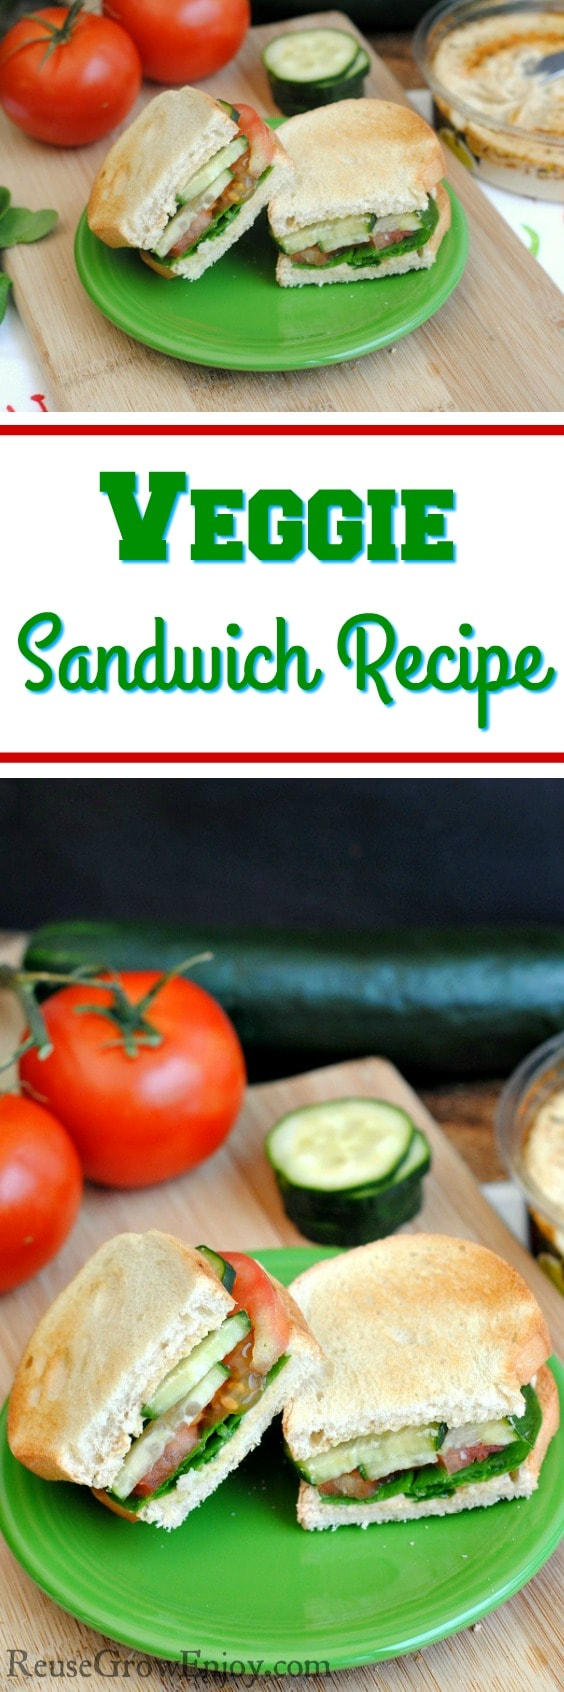 Looking for ways to eat a little more healthy? Check out this super easy to make Veggie Sandwich Recipe!